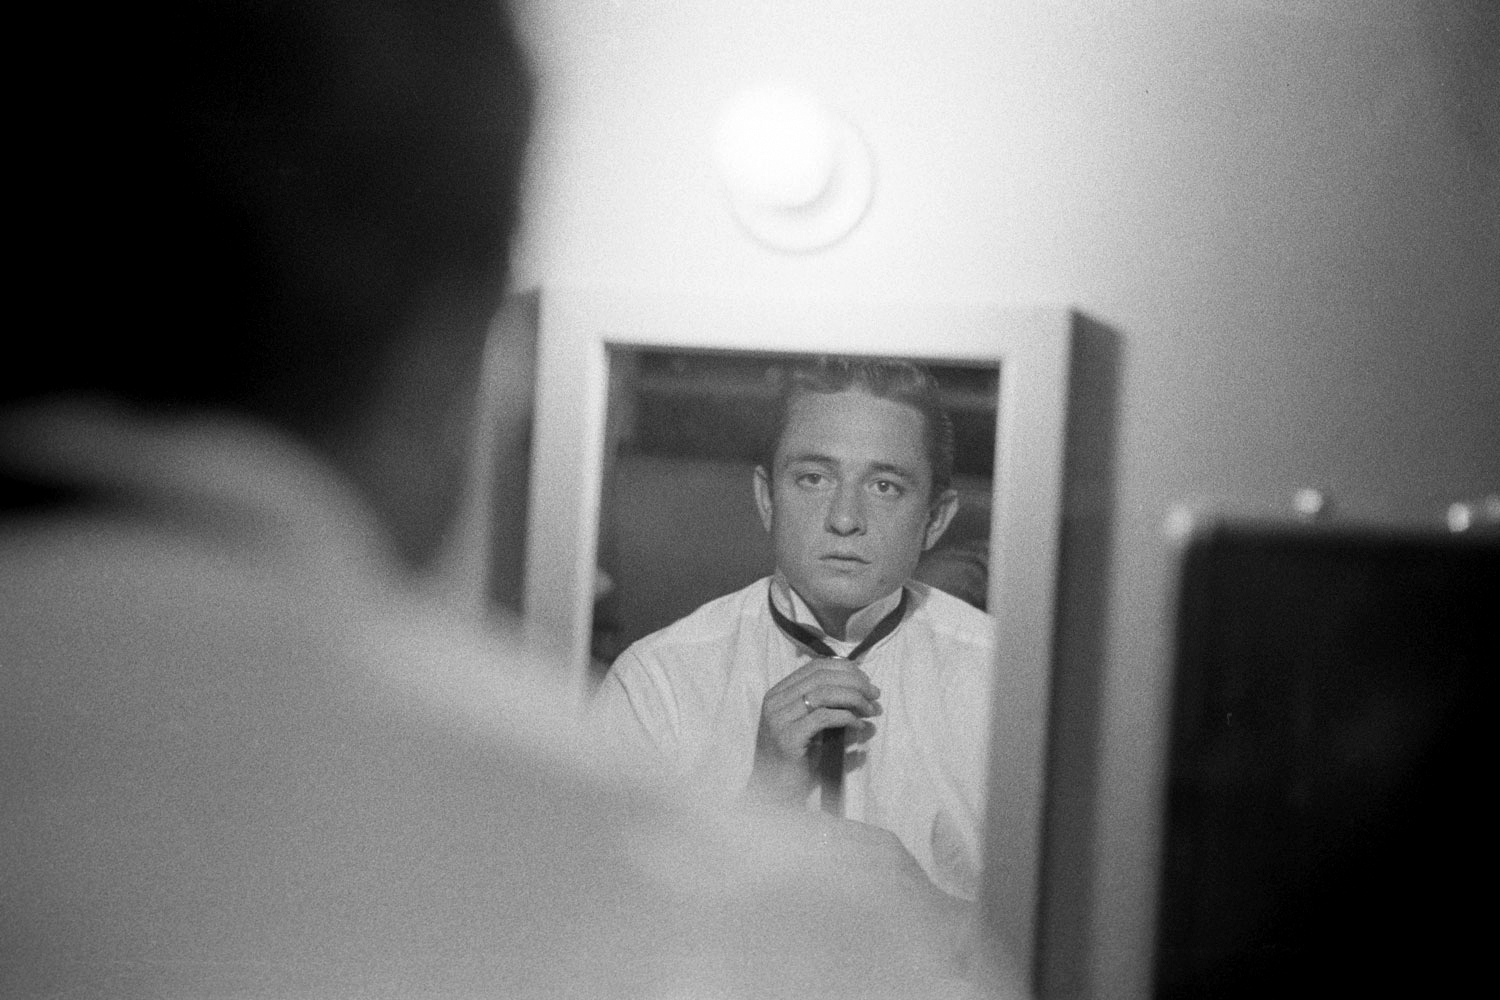 Backstage, May 1959.